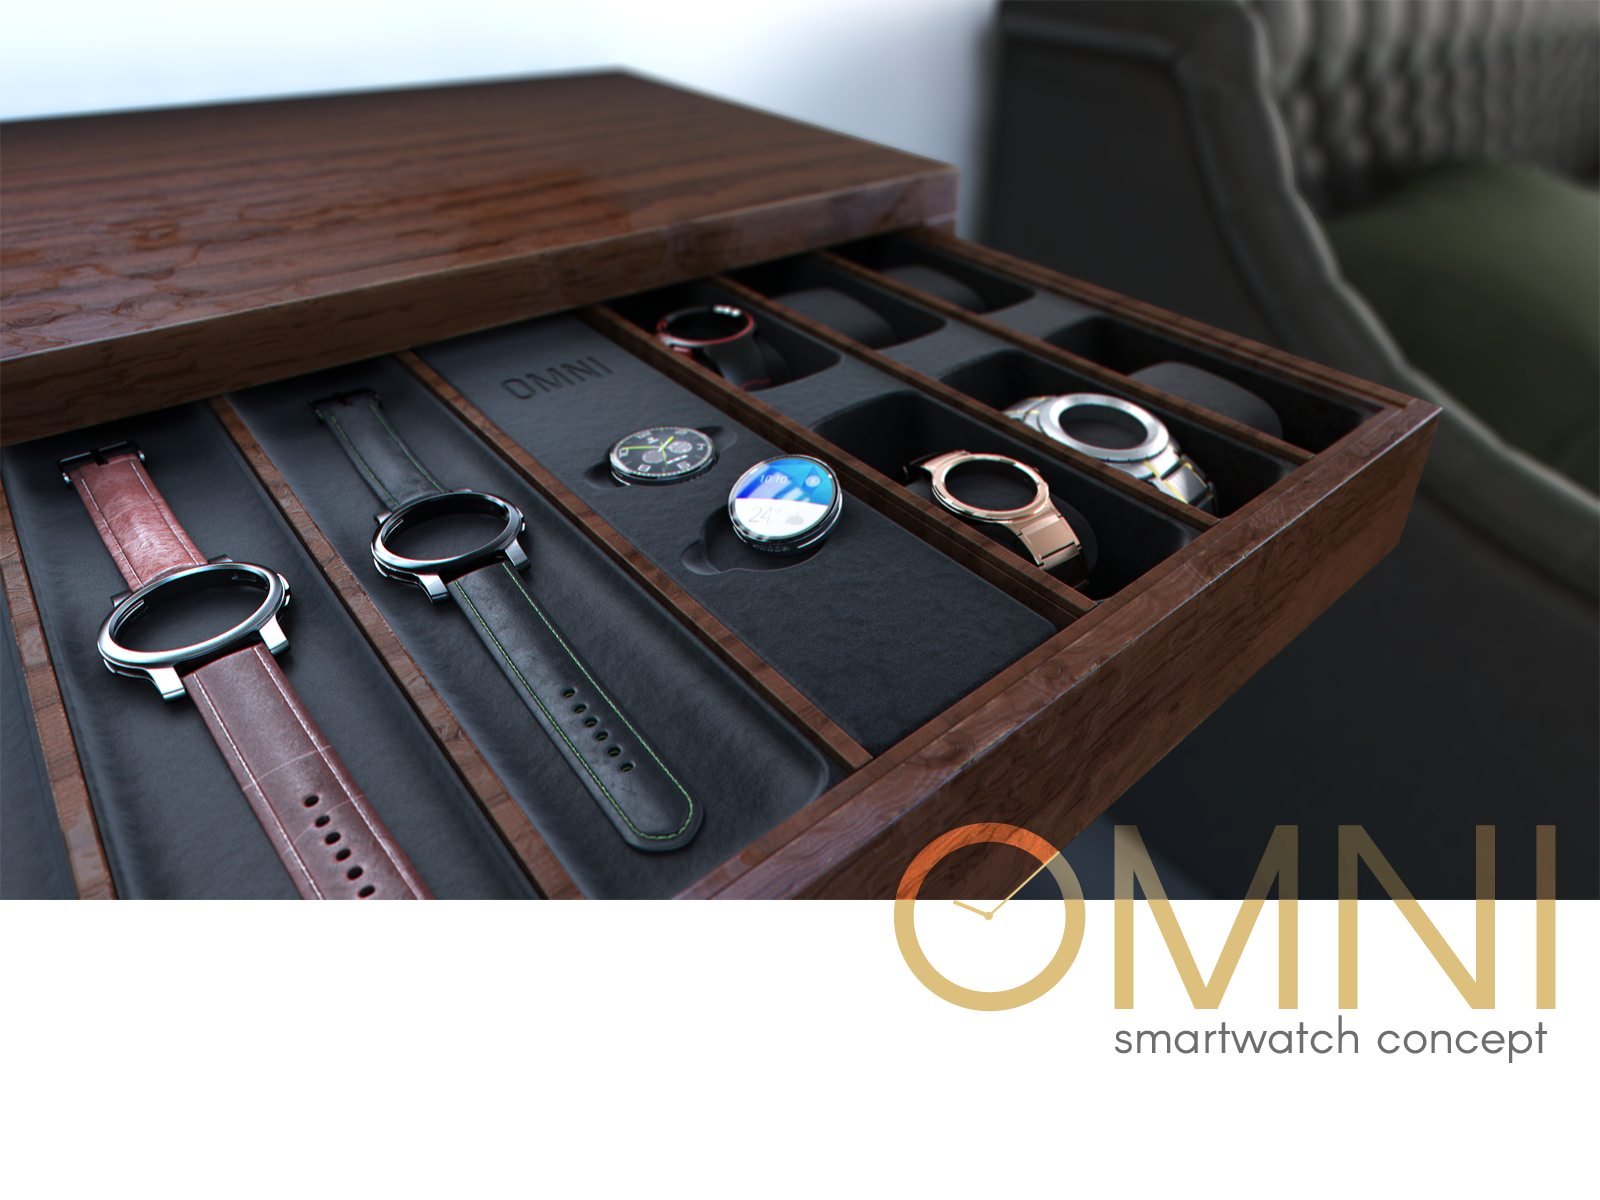 Omnis and Omni watch cases arranged in a wooden presentation display